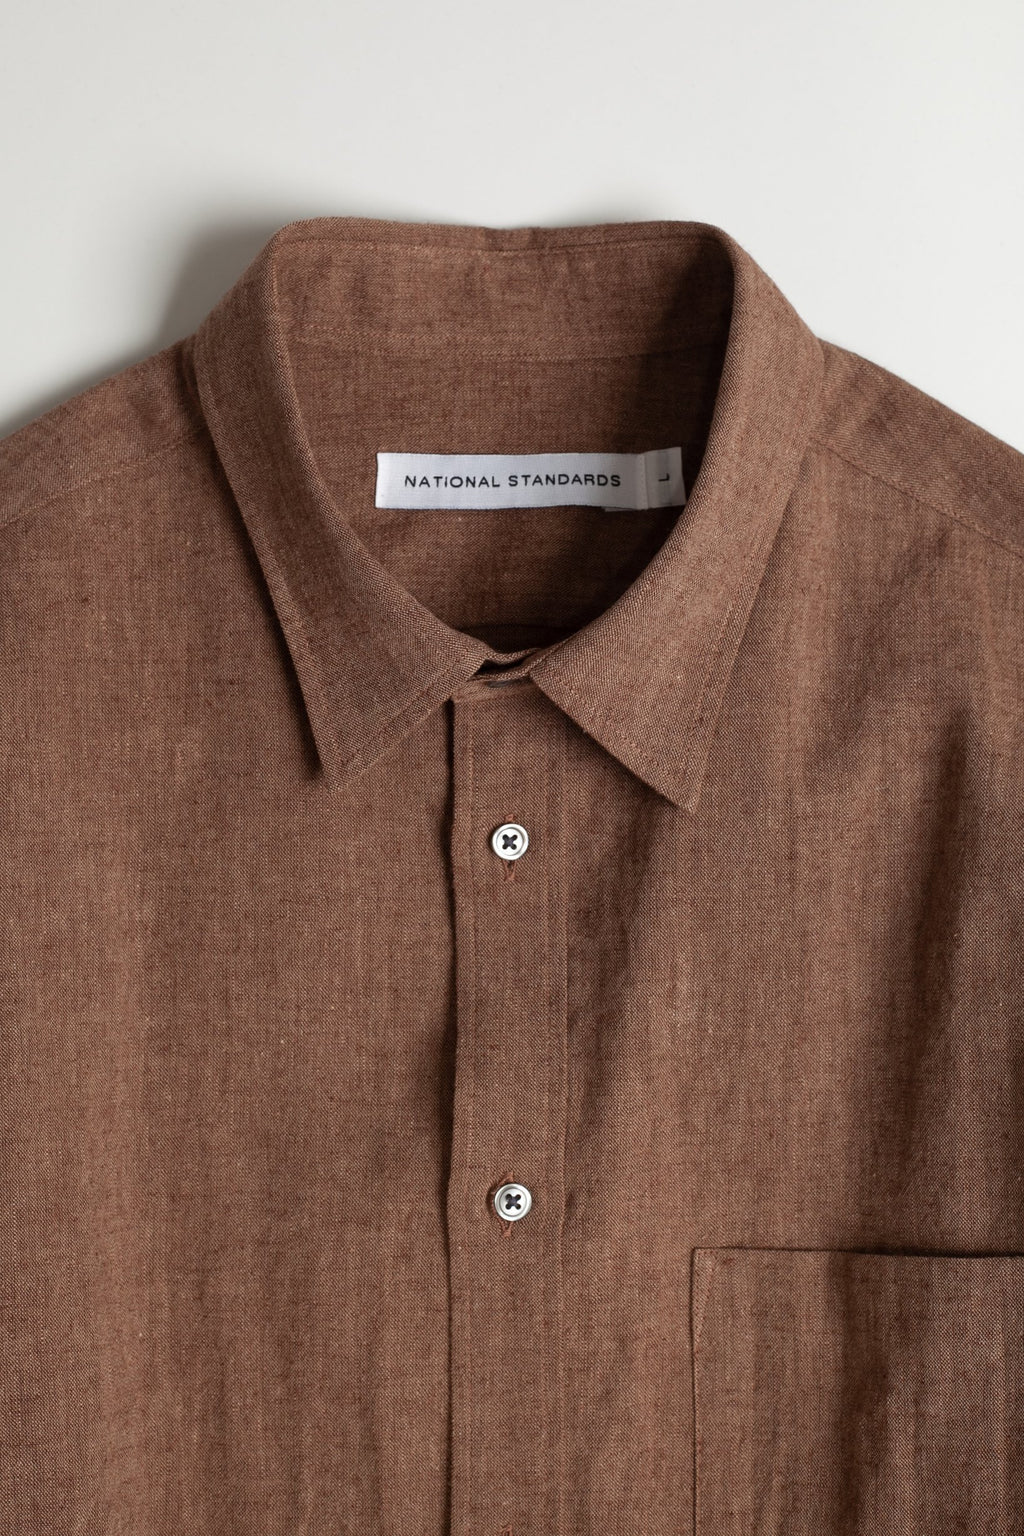 Japanese Euro Linen in Brown 05